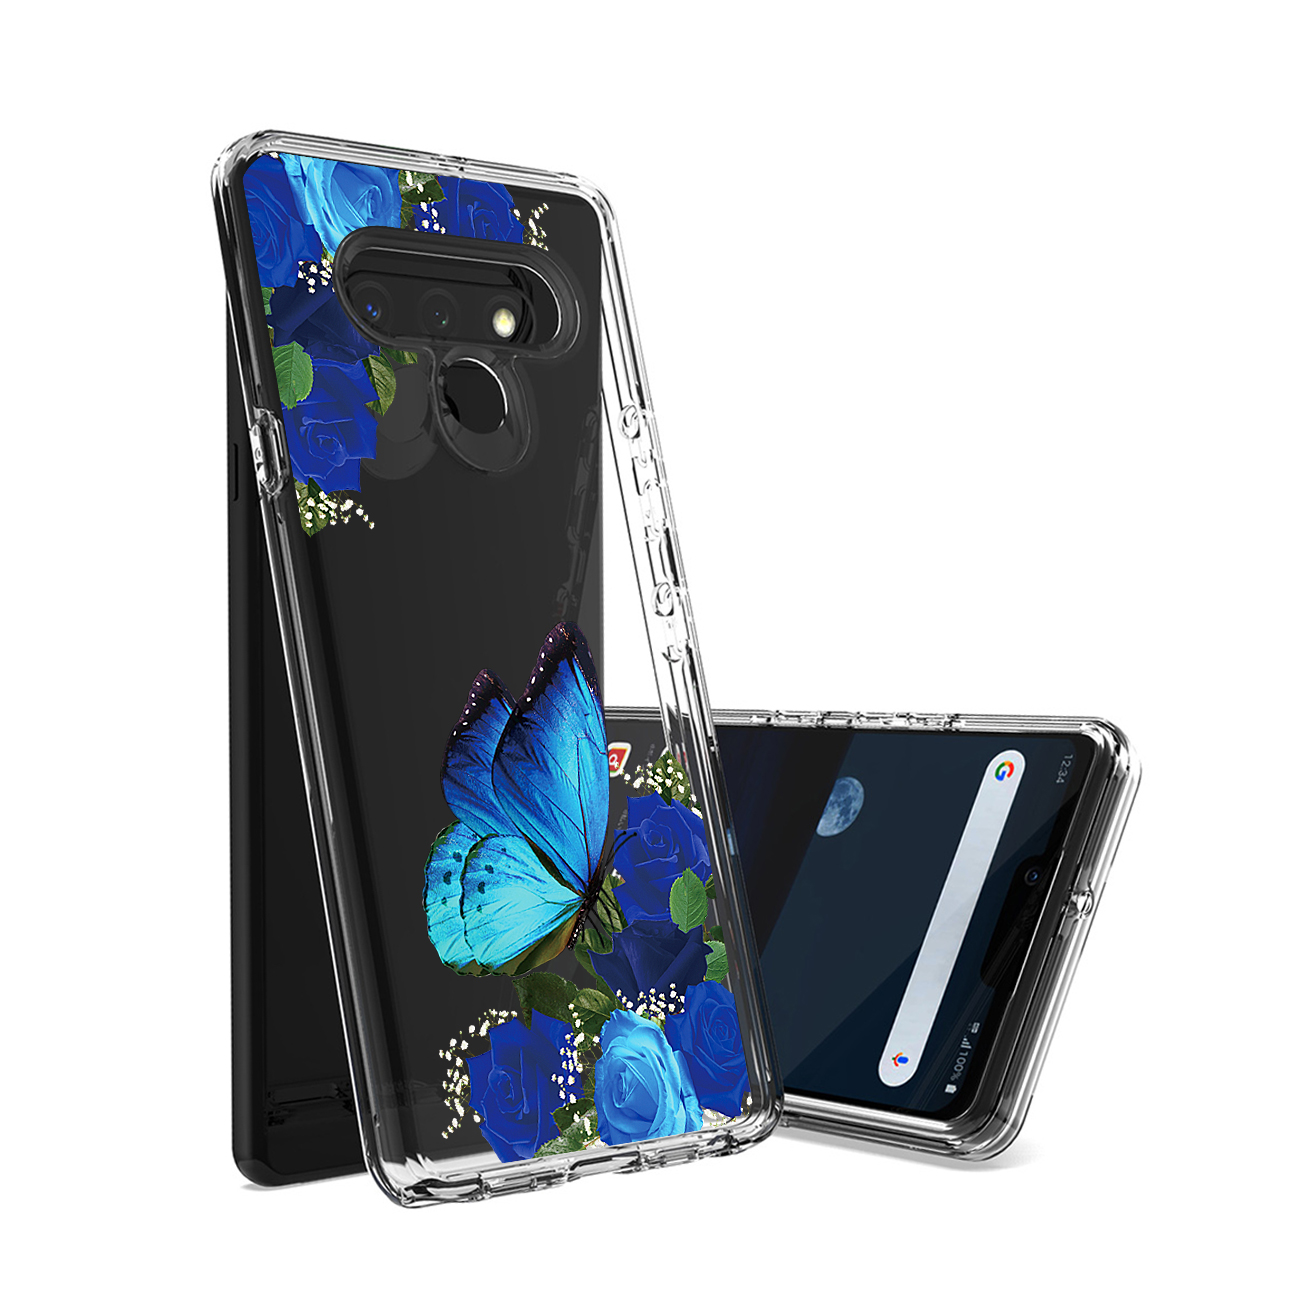 Pressed dried flower Design Phone case for LG Stylo 6 In Blue PC25-LGSTYLO6BL